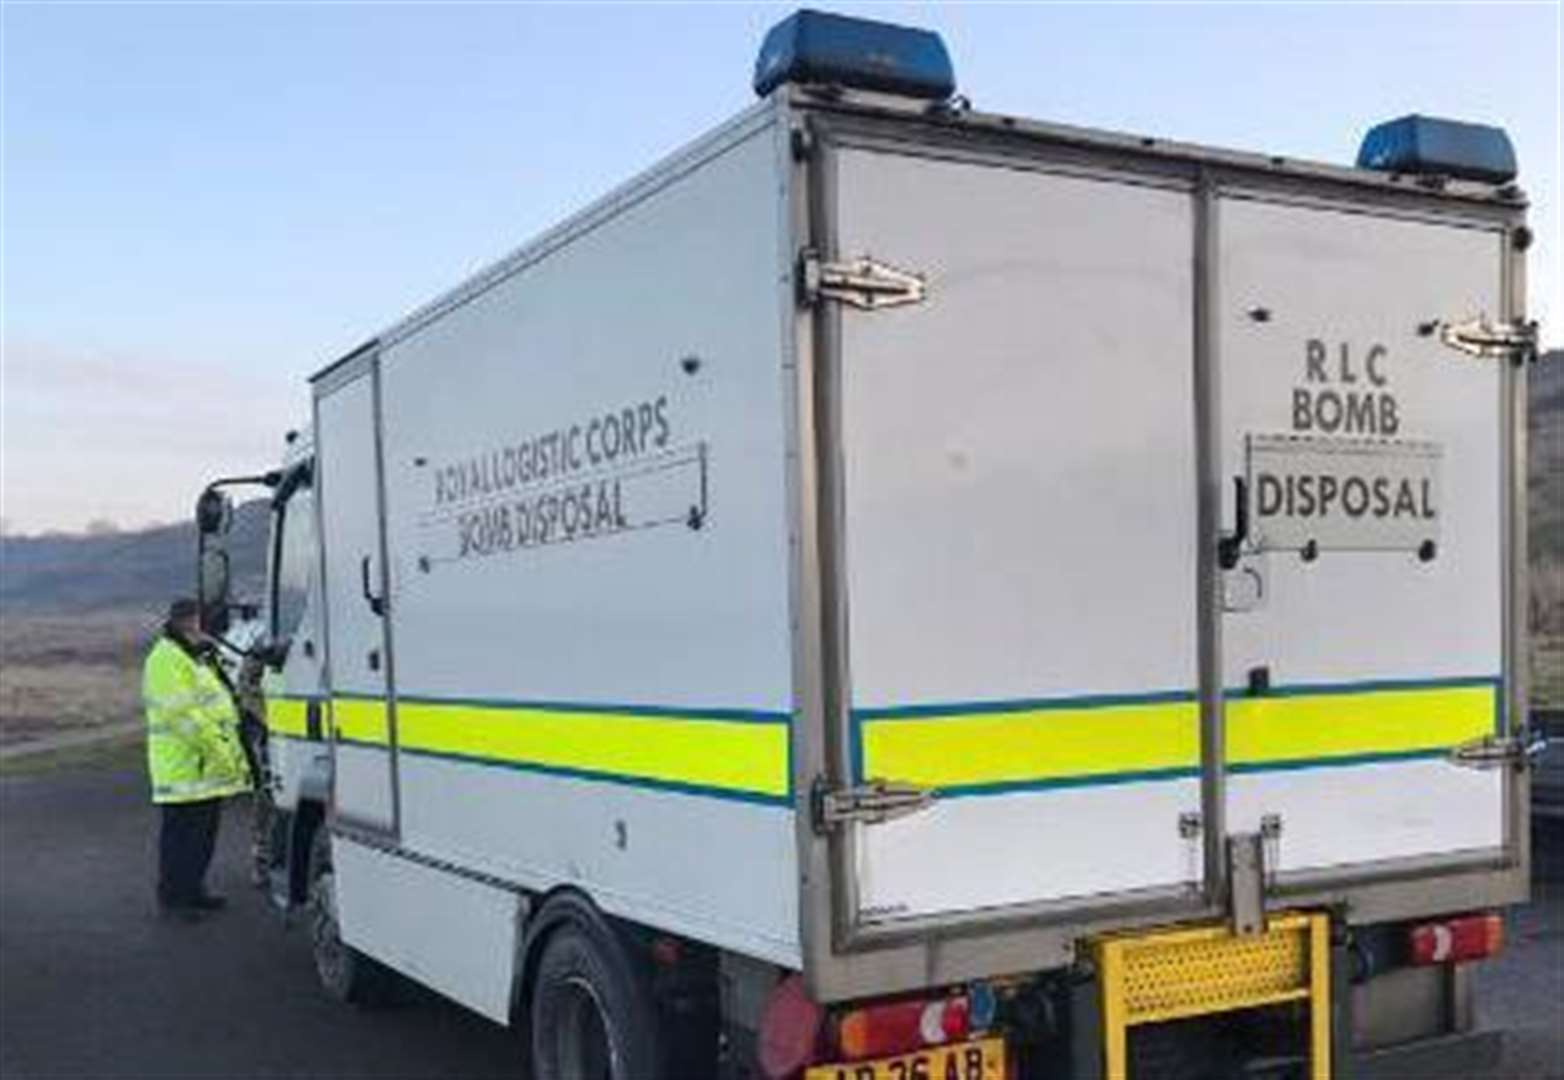 Bomb squad called after explosives found